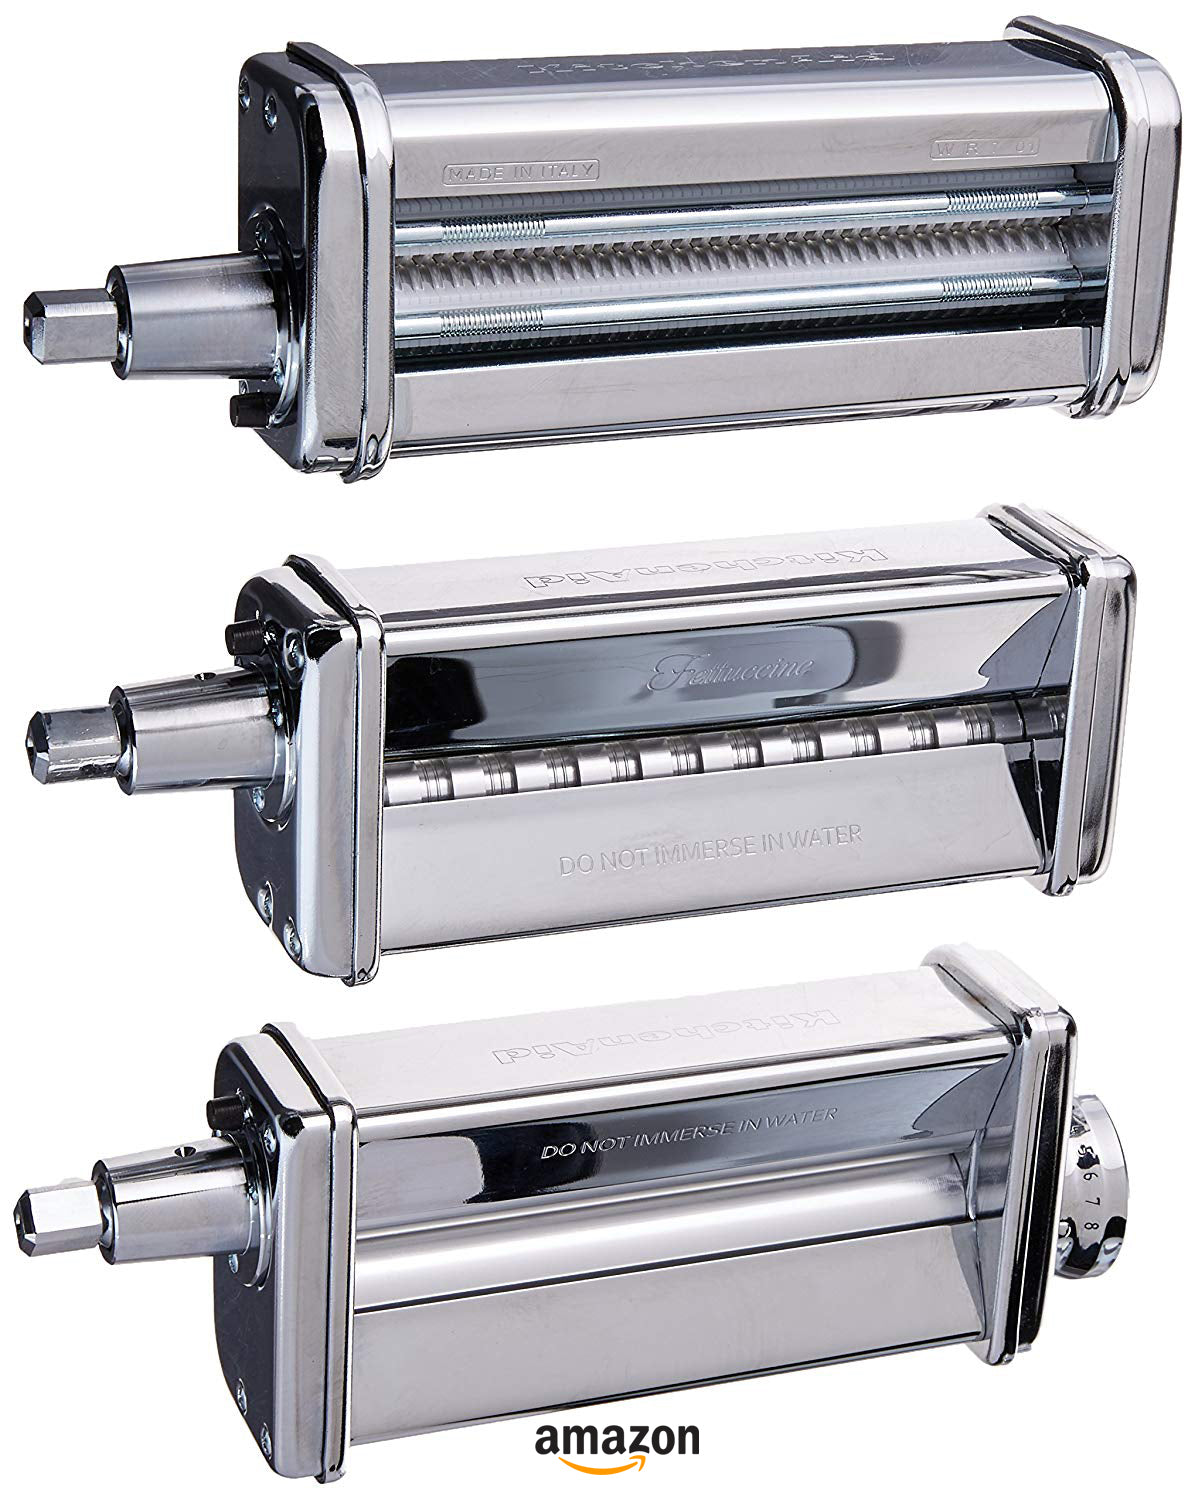 KitchenAid pasta Pasta Roller and cutter for Spaghetti and Fettuccine